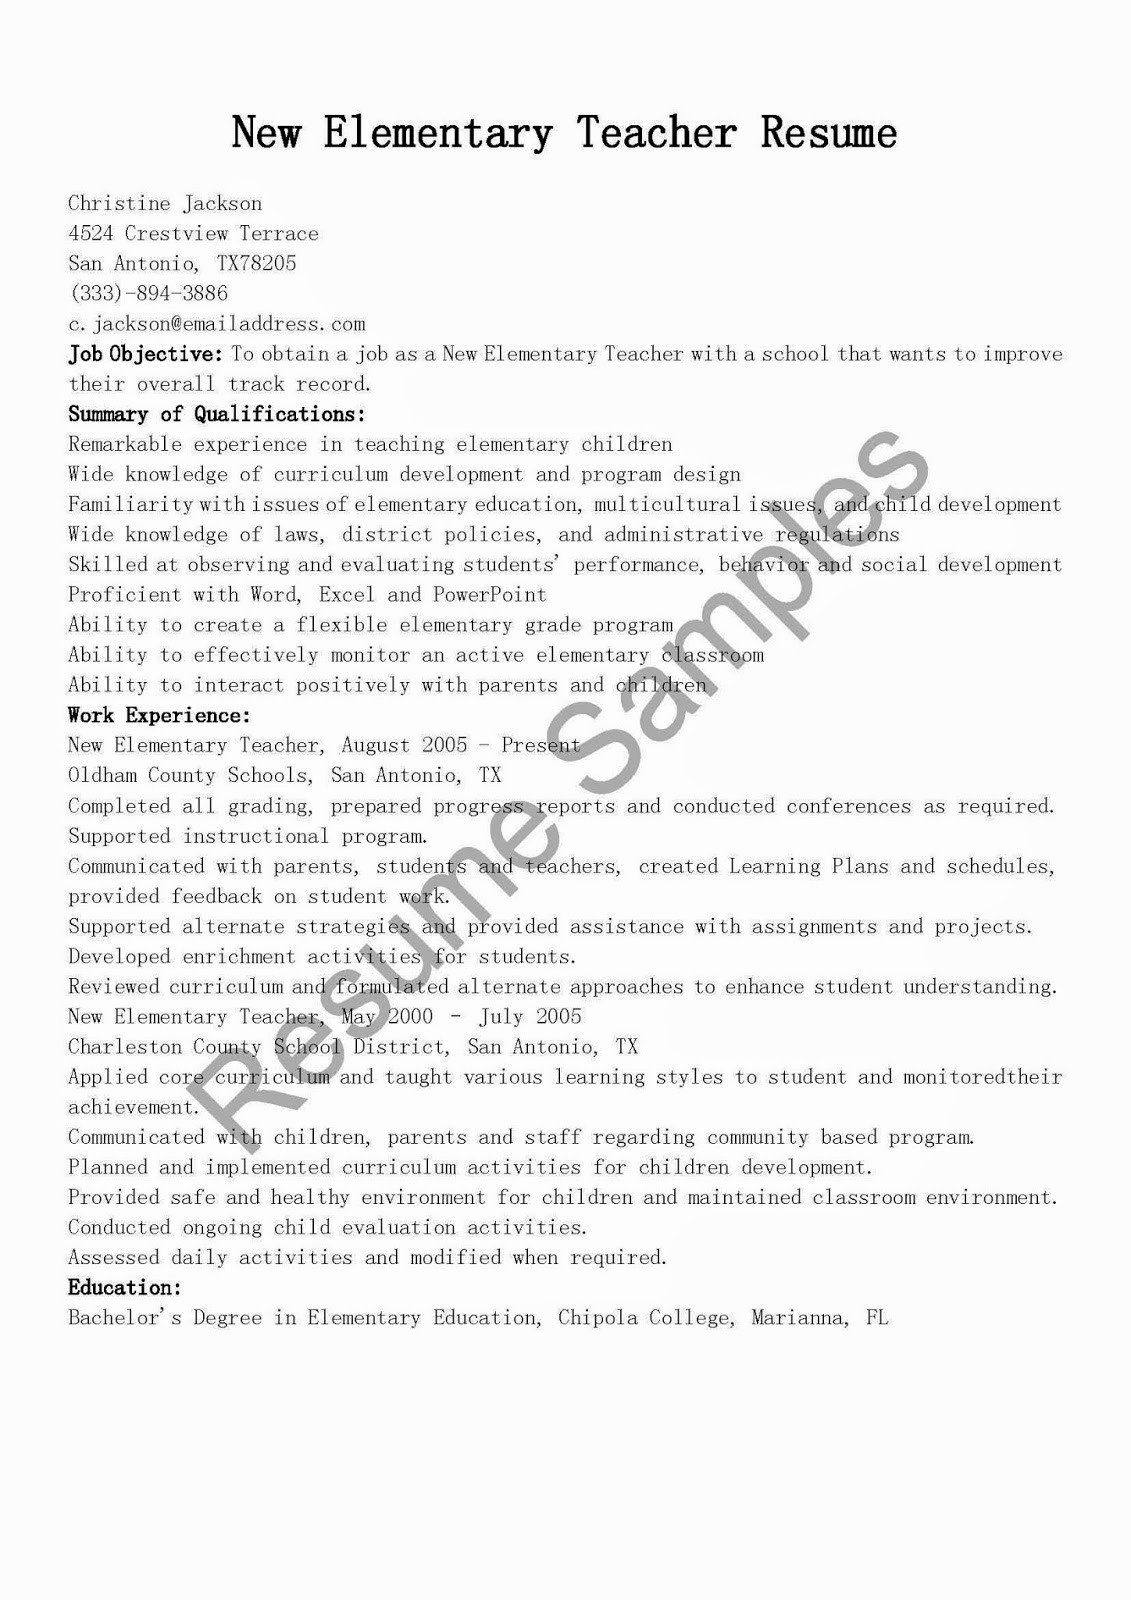 Pre K Teacher Resume Elegant Pre K Teacher Resume Best